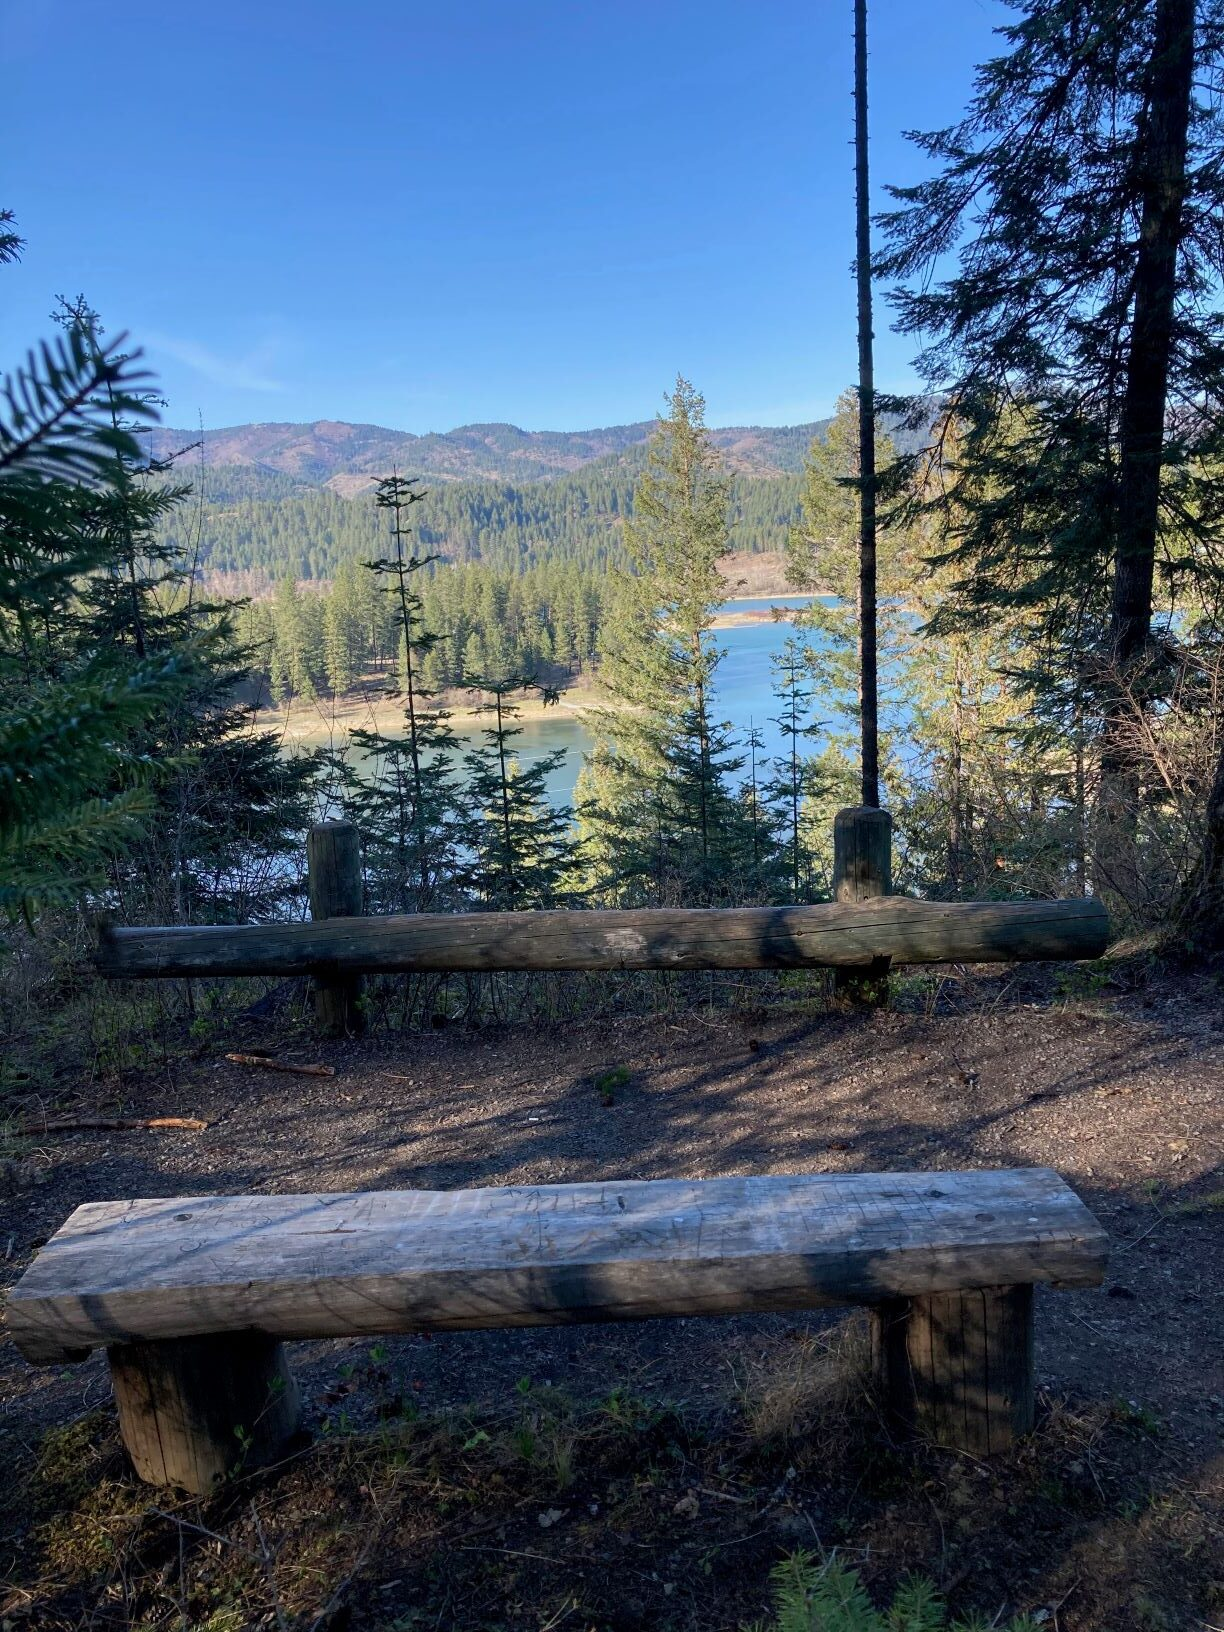 Viewpoint along Wolf Trails, with a wooden bend and trees, overlooking the Pend Oreille River with distant mountain slopes.